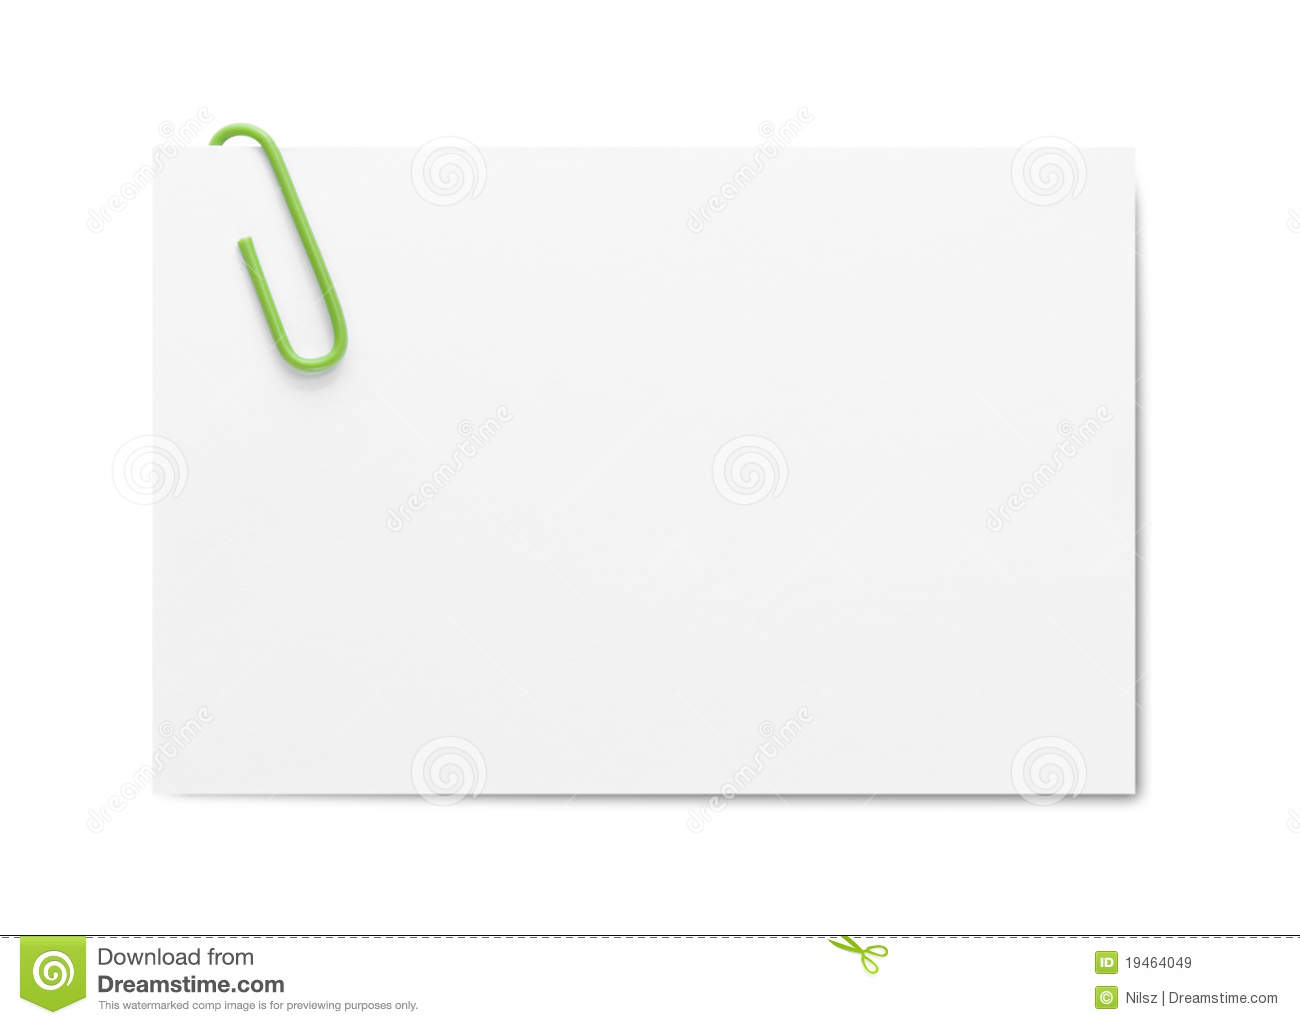 Business Card With Paper Clip Stock Image - Image: 19464049